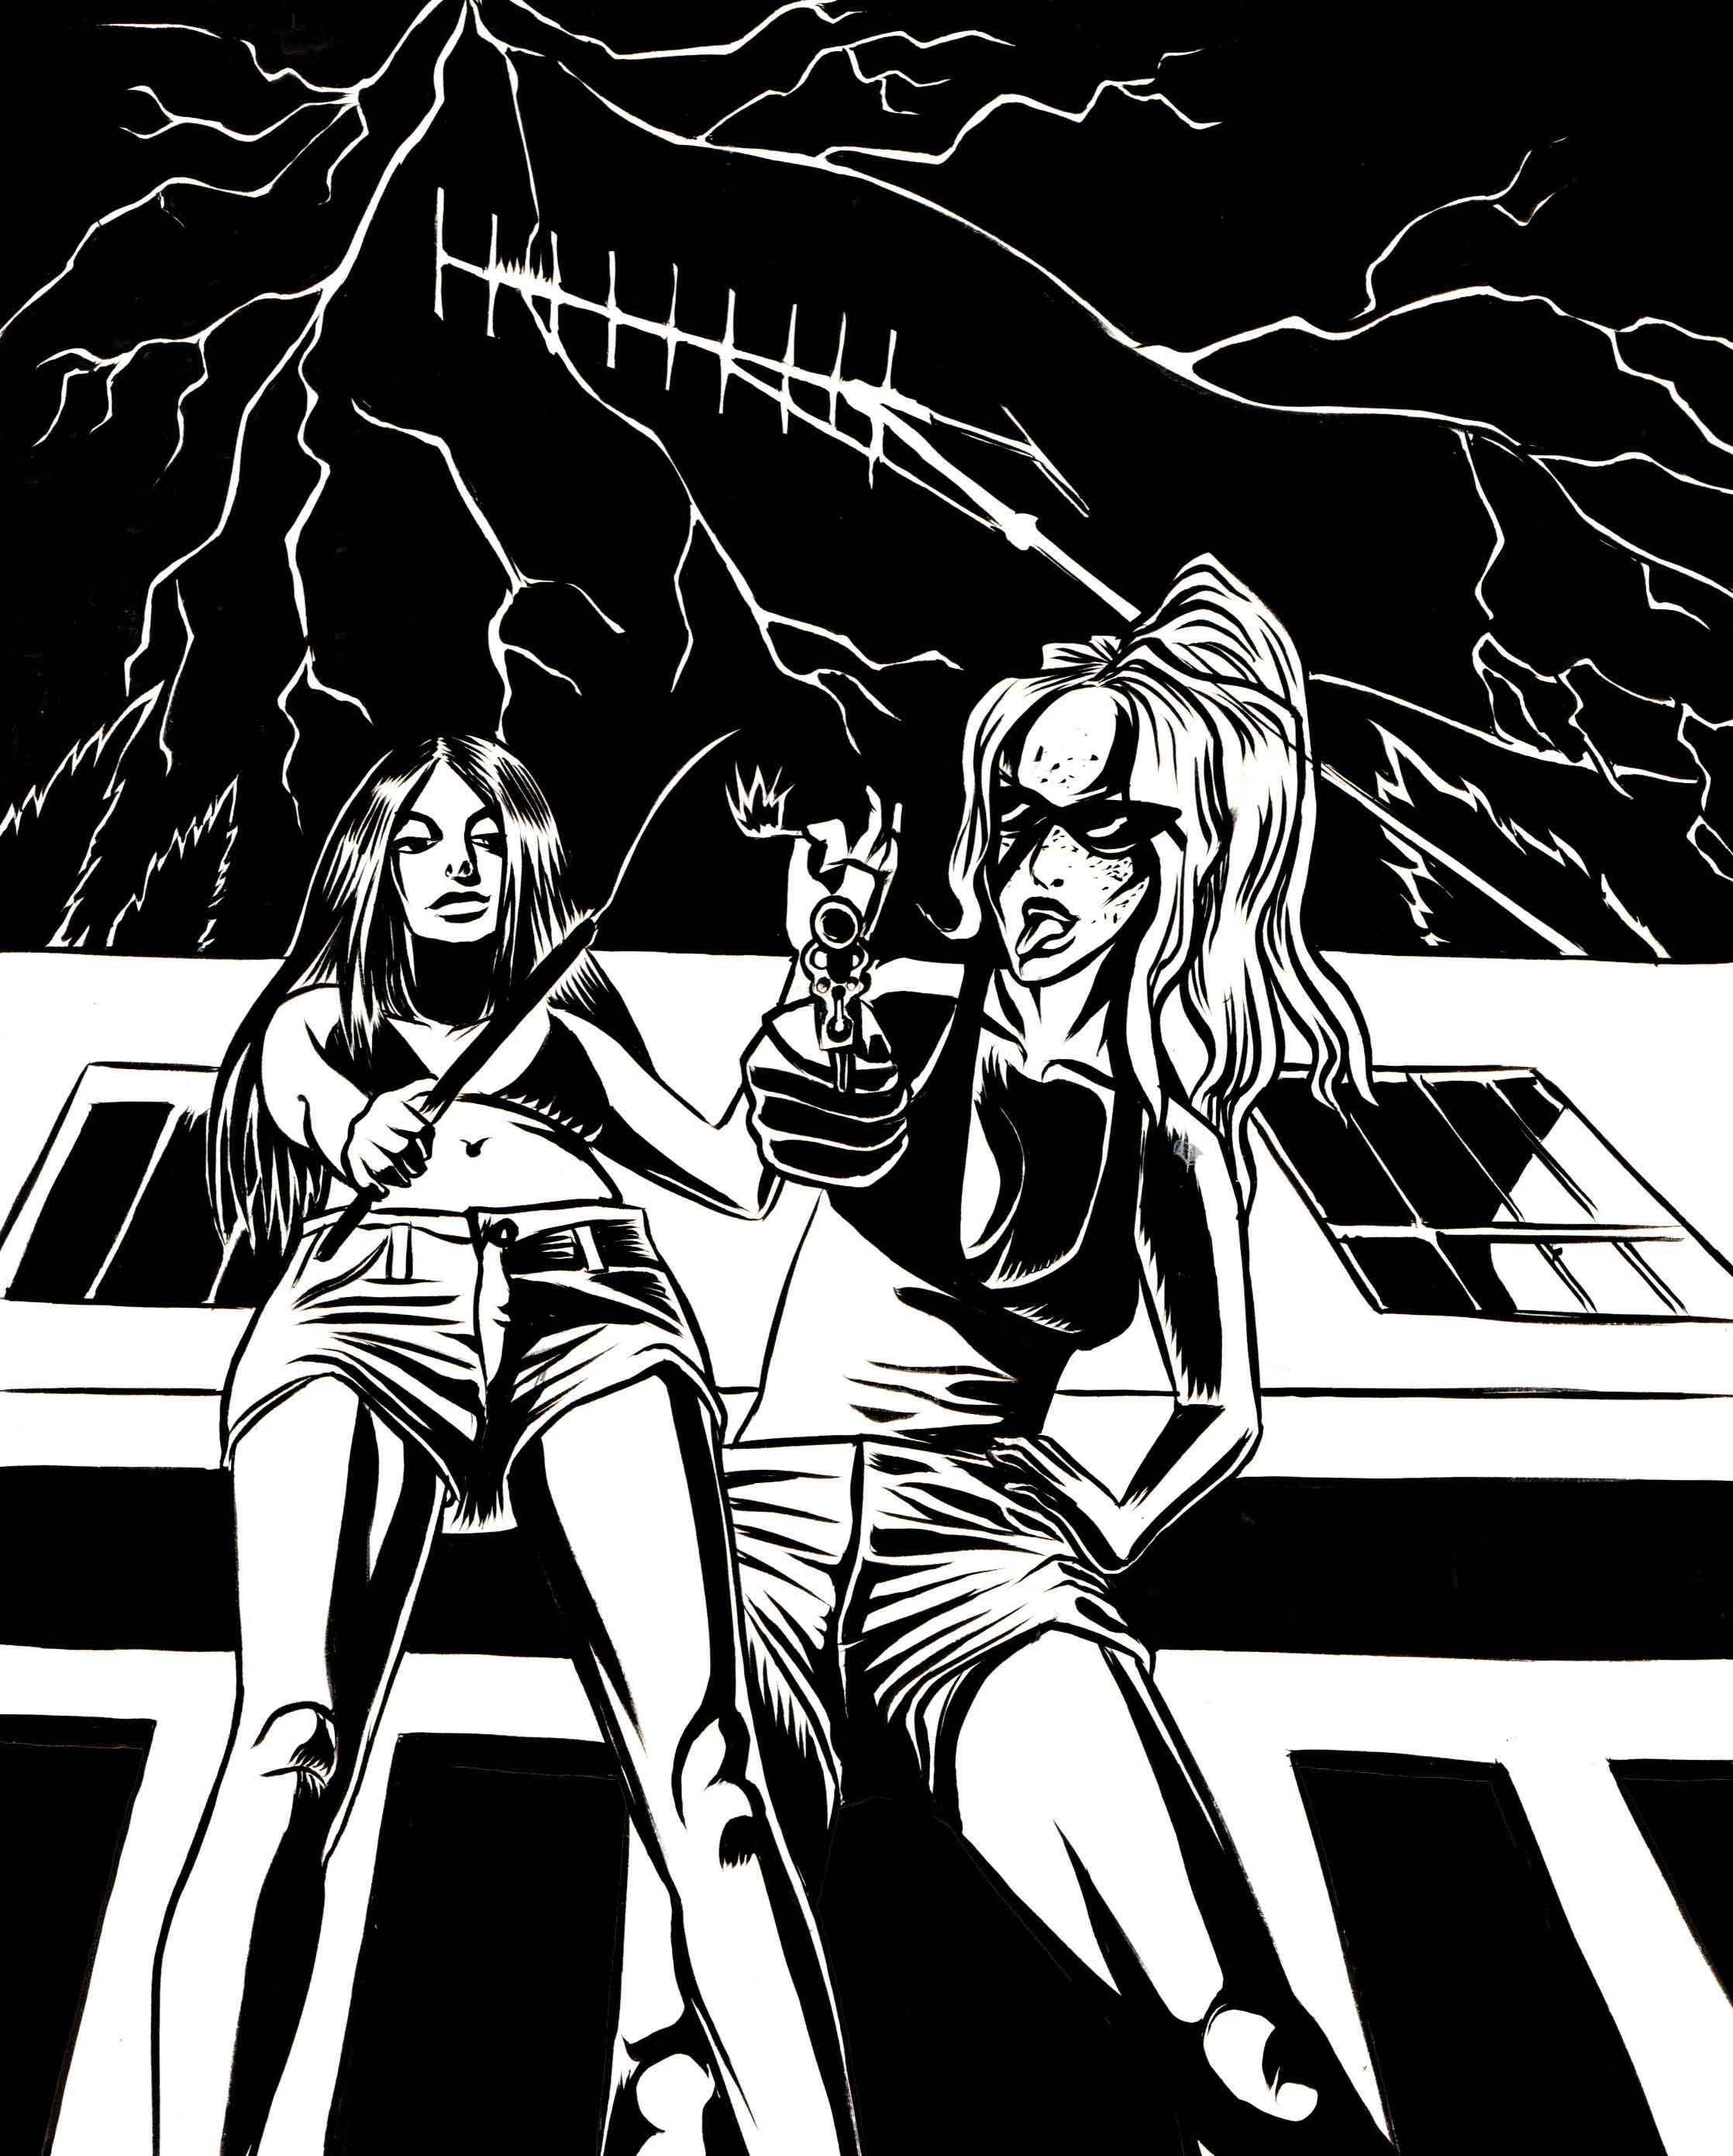 B-movie-girls_illustration